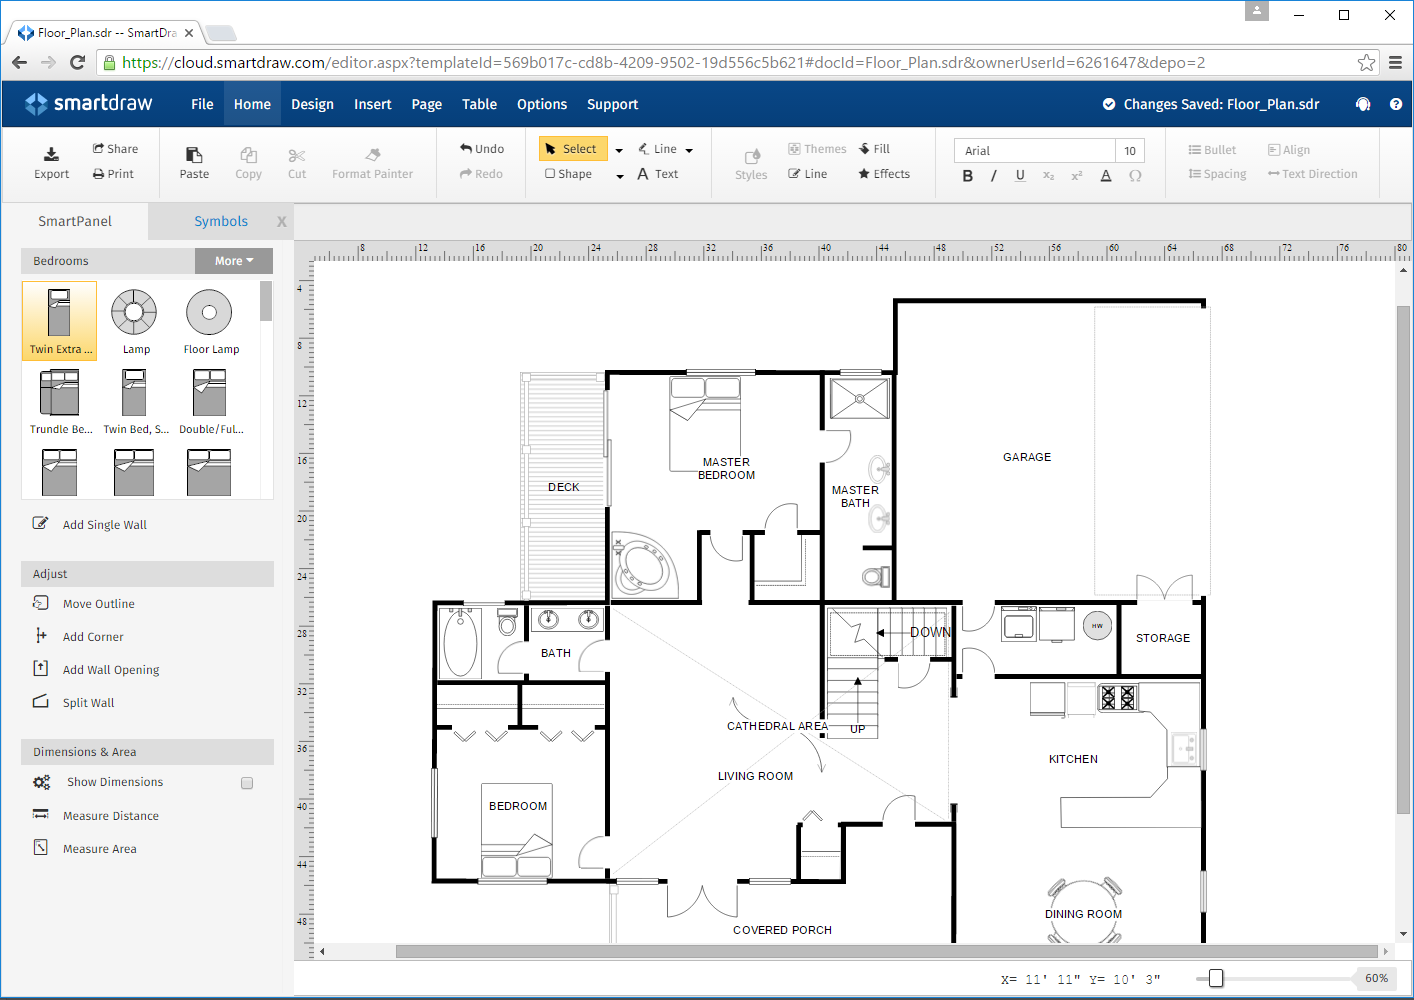 Visio Floor Plan Scale Logos Amp Images Smartdraw Software